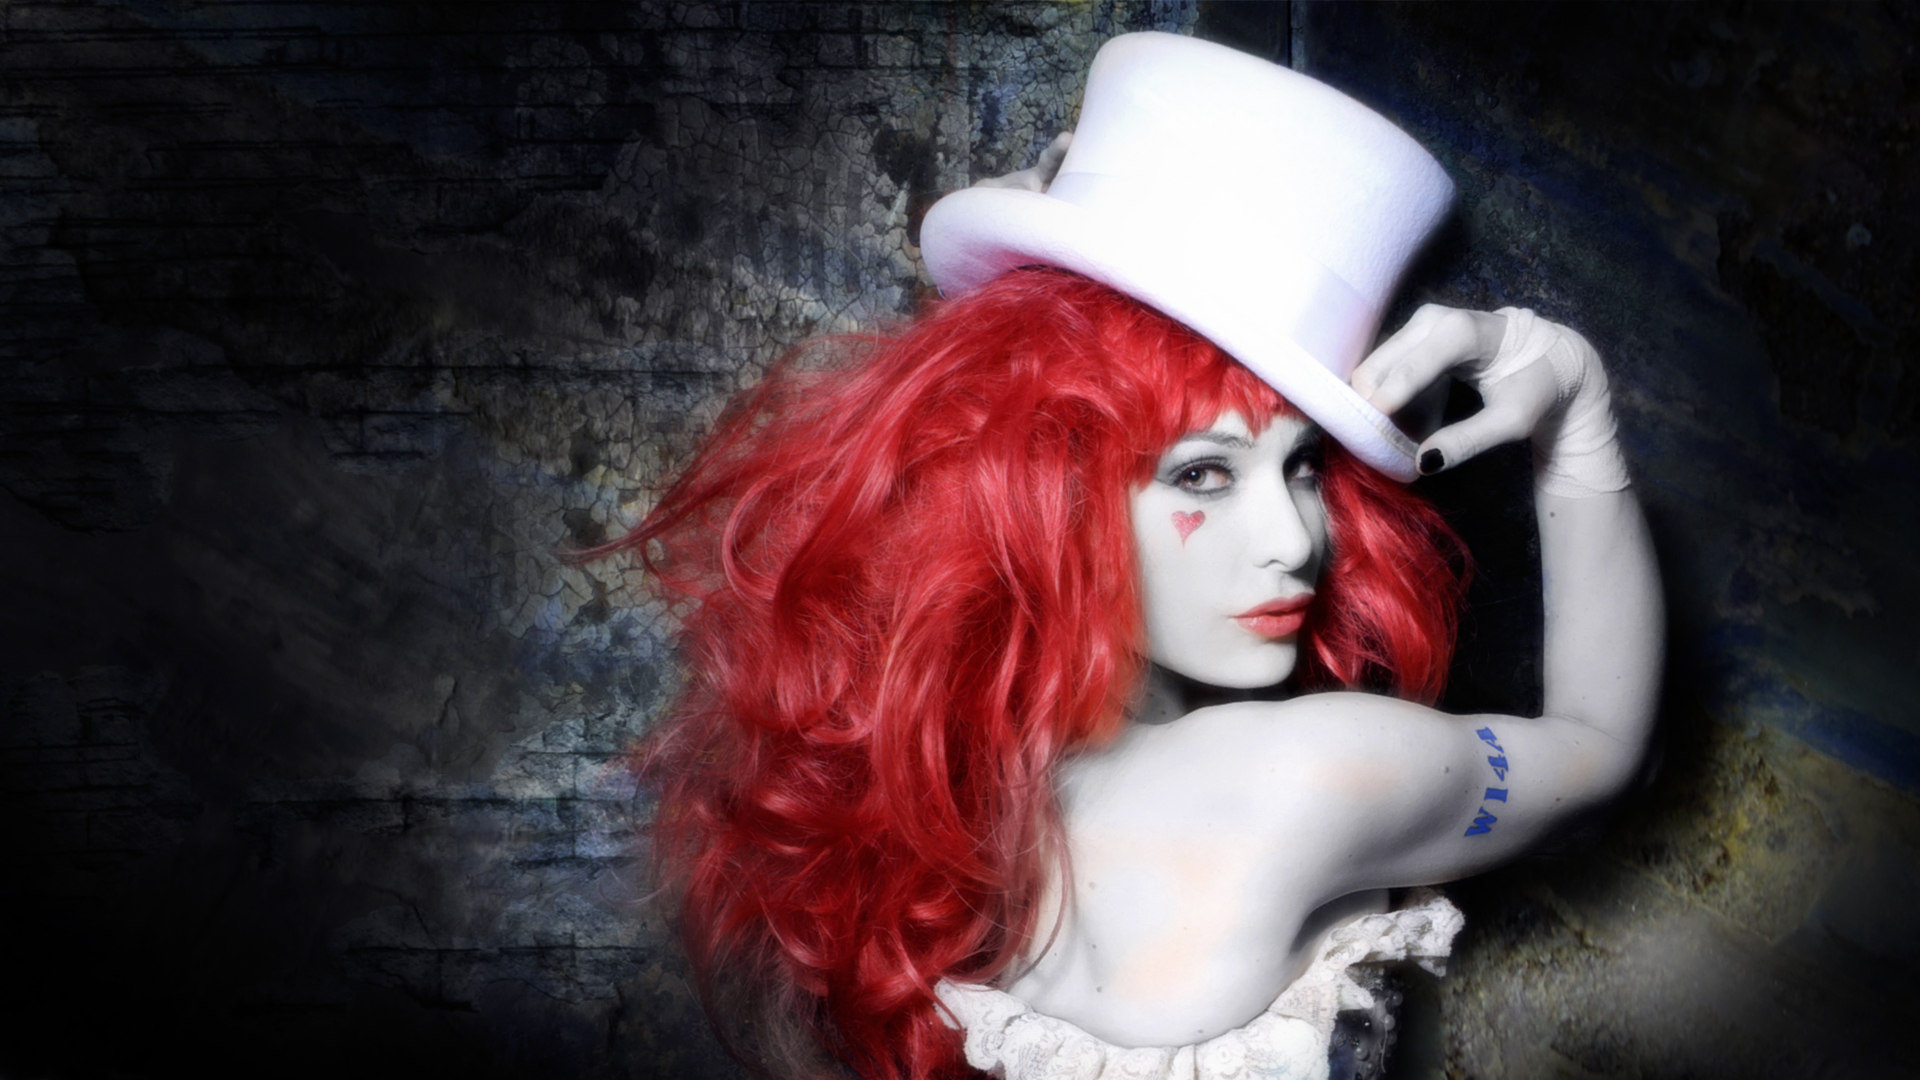 emilie autumn tumblremilie autumn fight like a girl, emilie autumn dead is the new alive, emilie autumn opheliac, emilie autumn перевод, emilie autumn – liar, emilie autumn – time for tea, emilie autumn marry me перевод, emilie autumn 2016, emilie autumn tumblr, emilie autumn 2015, emilie autumn juliet, emilie autumn marry me, emilie autumn 2017, emilie autumn скачать, emilie autumn – shalott, emilie autumn if i burn lyrics, emilie autumn take the pill, emilie autumn what if, emilie autumn vk, emilie autumn wiki